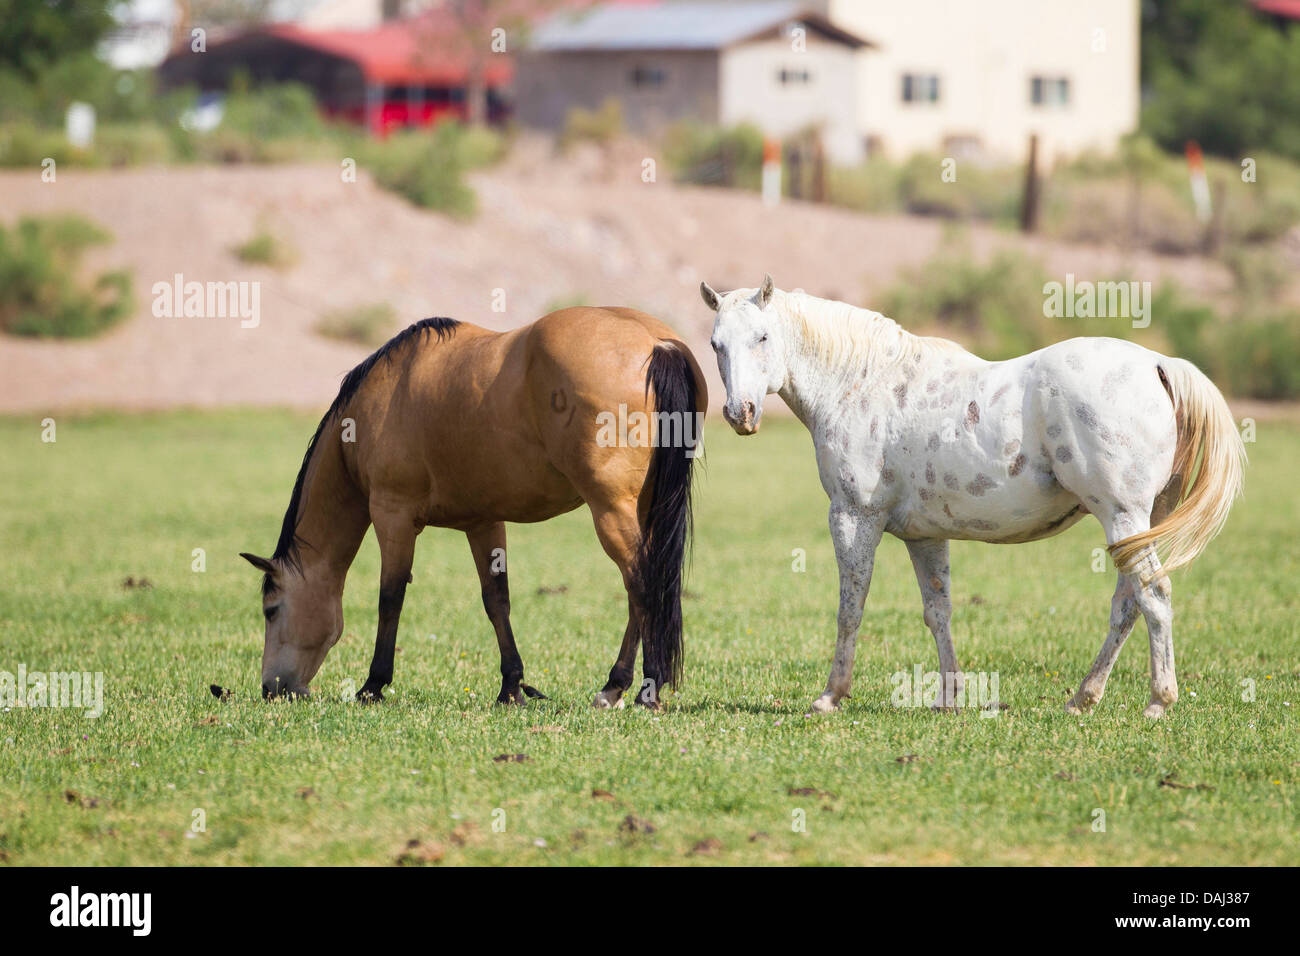 Horses near San Antonio, New Mexico - Stock Image